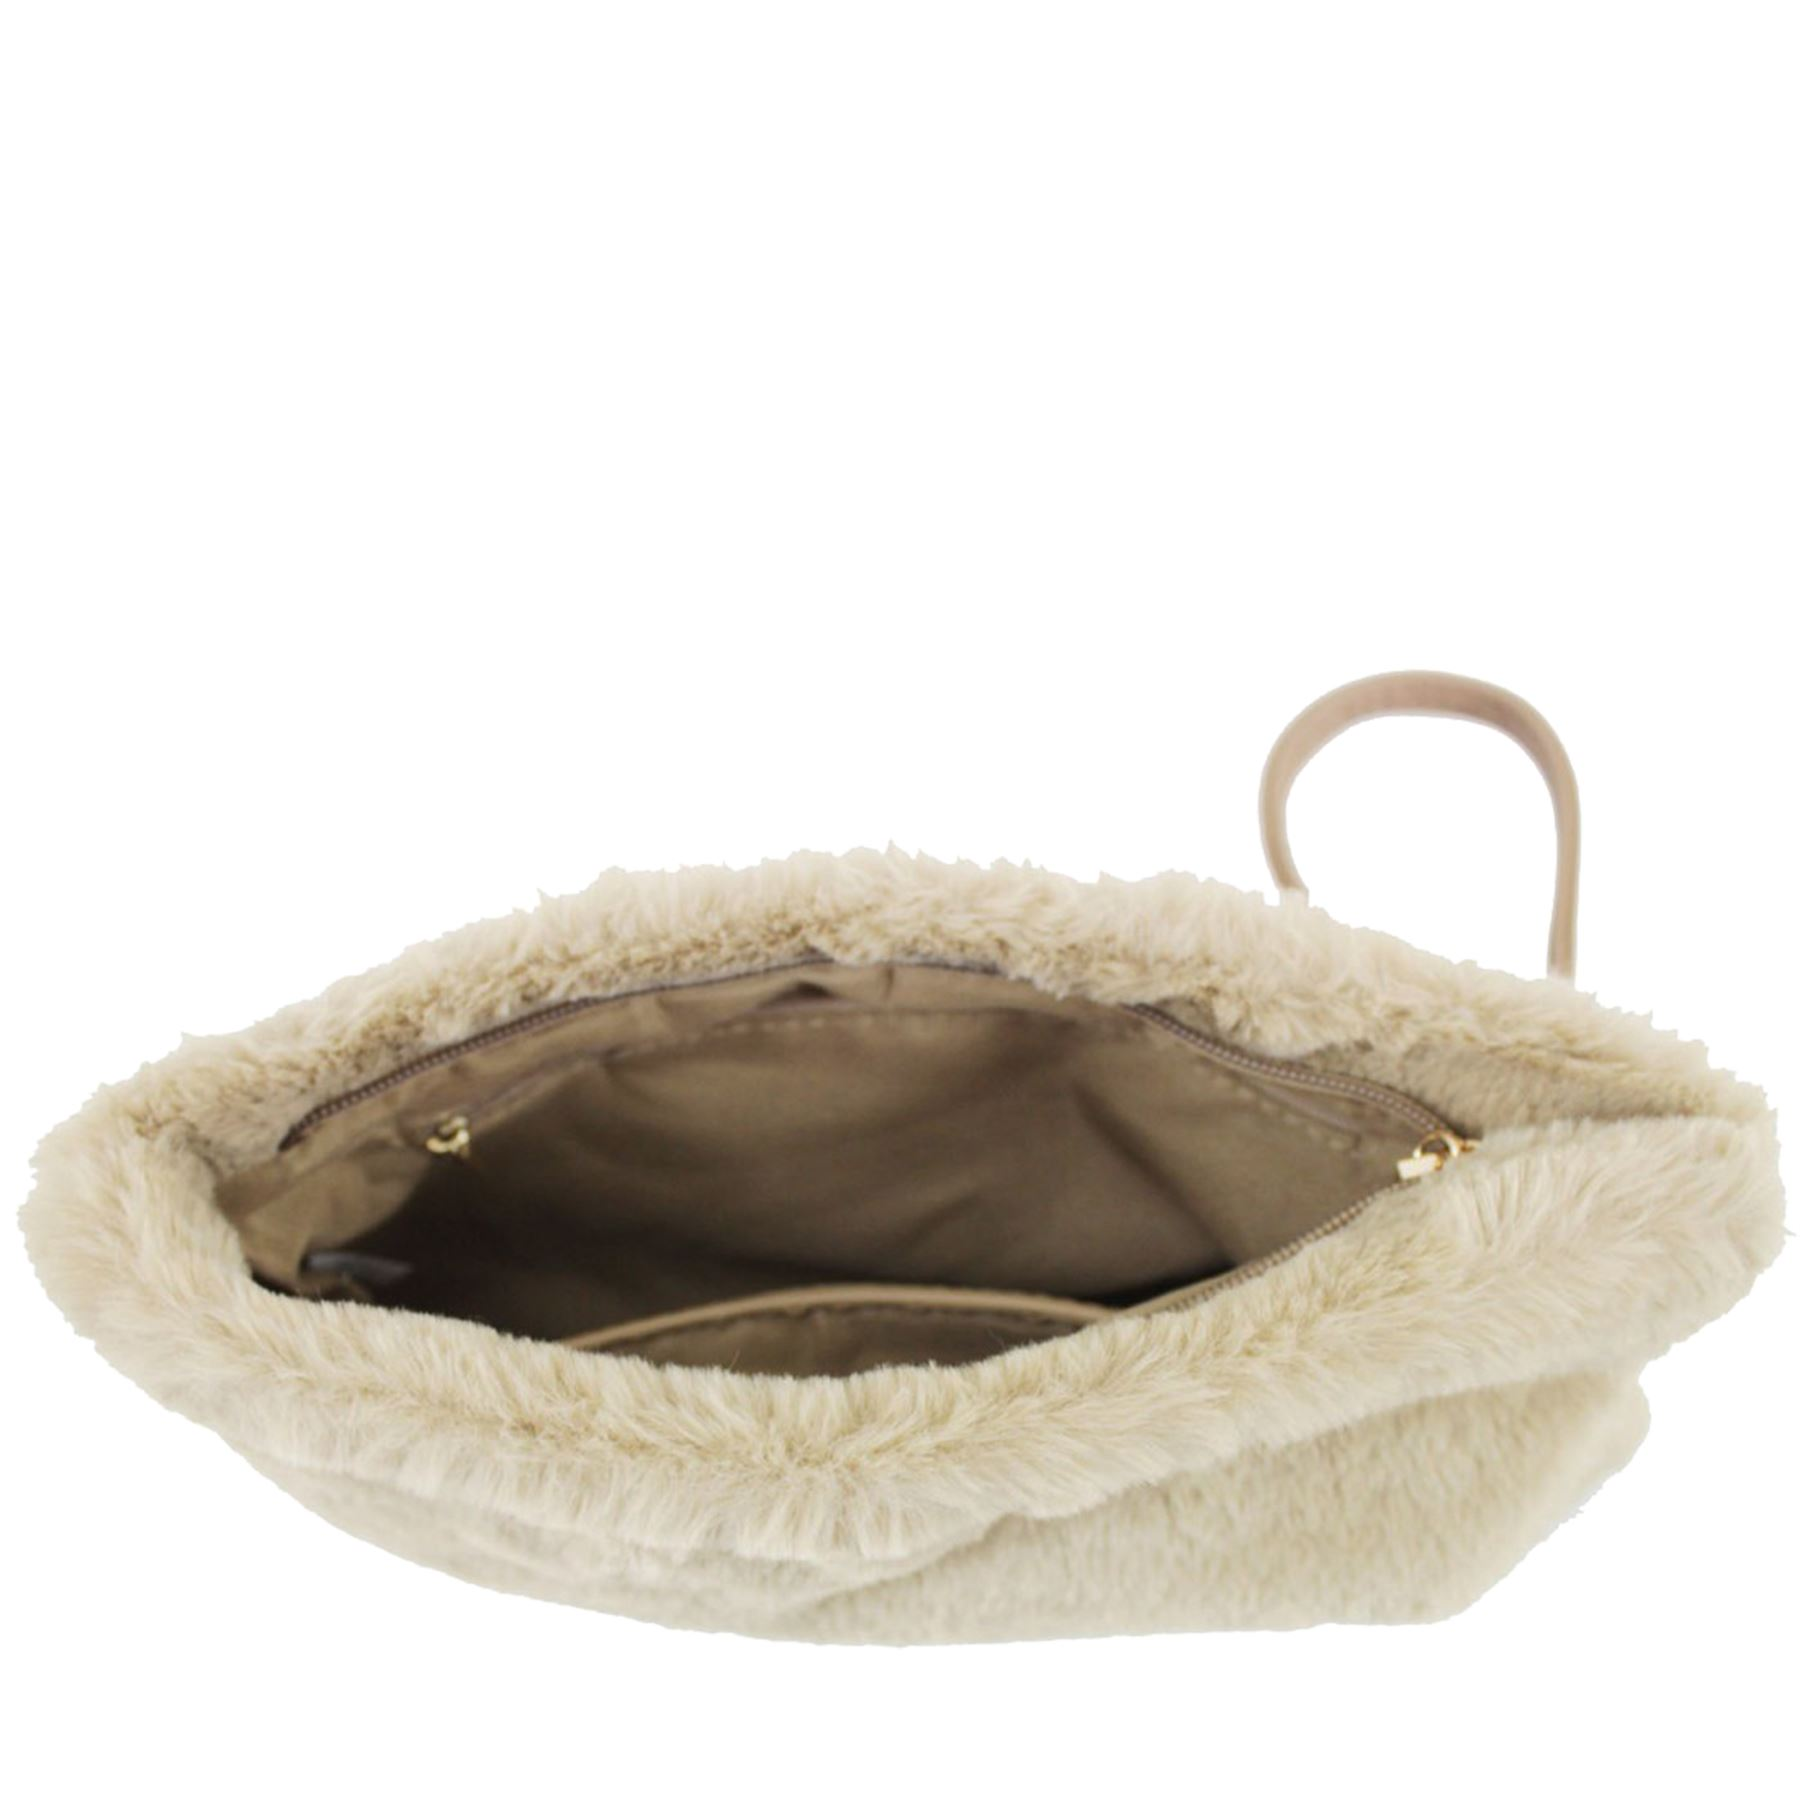 New Synthetic Fur Wrist Strap Inner Pockets Ladies Clutch Bag Purse